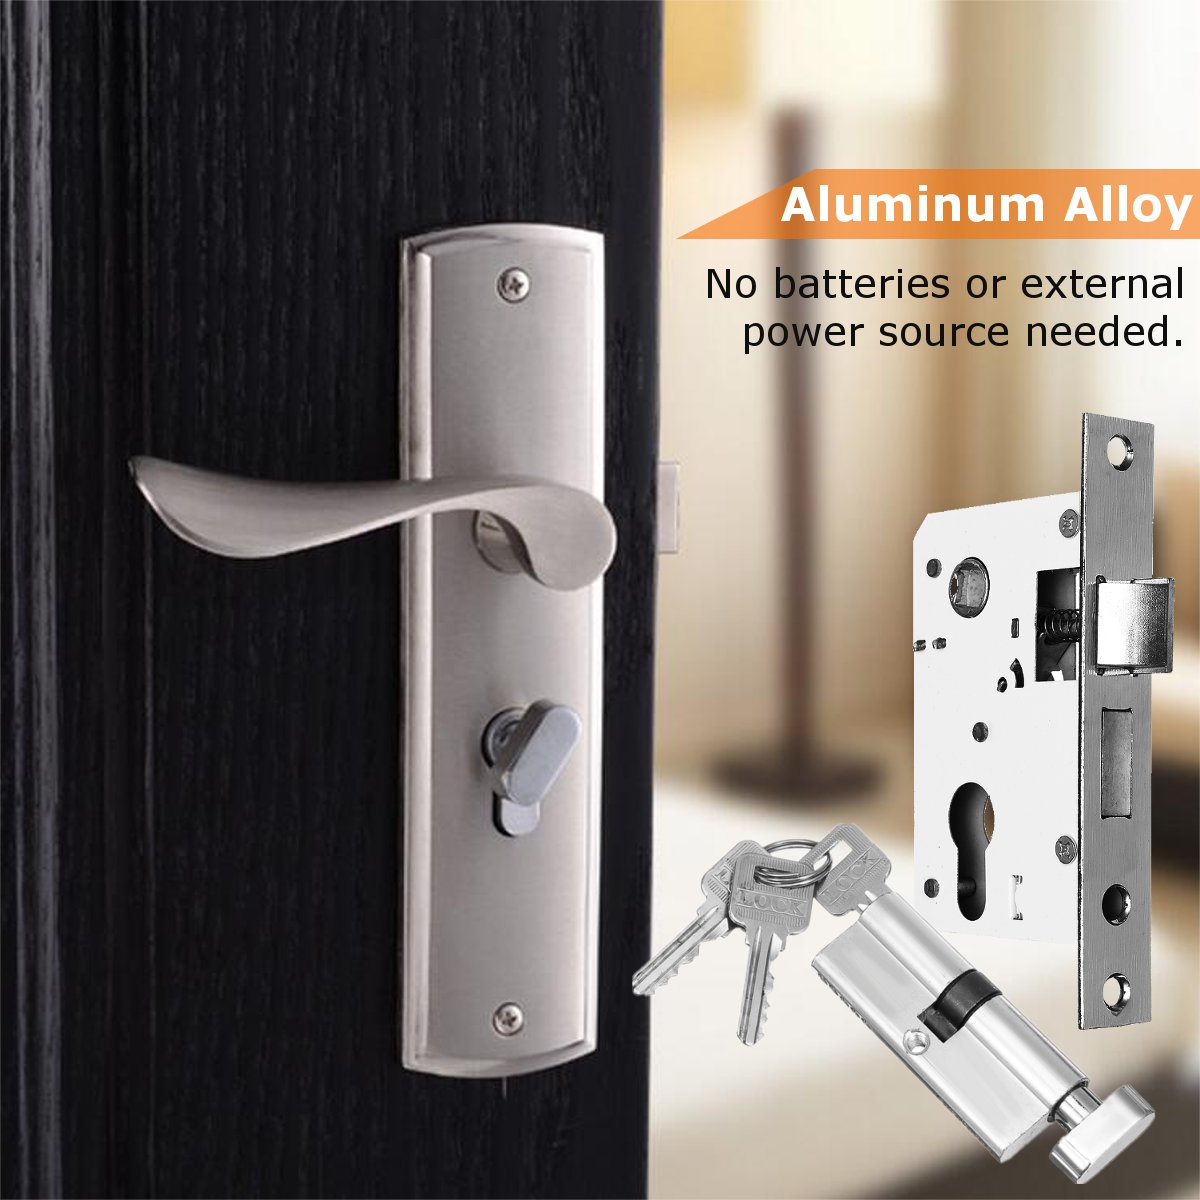 Aluminum Alloy Mechanical Door Lock Set Handle Deadbolt Latch Locks Interior Lockset Kit Home Office Security Door Hardware